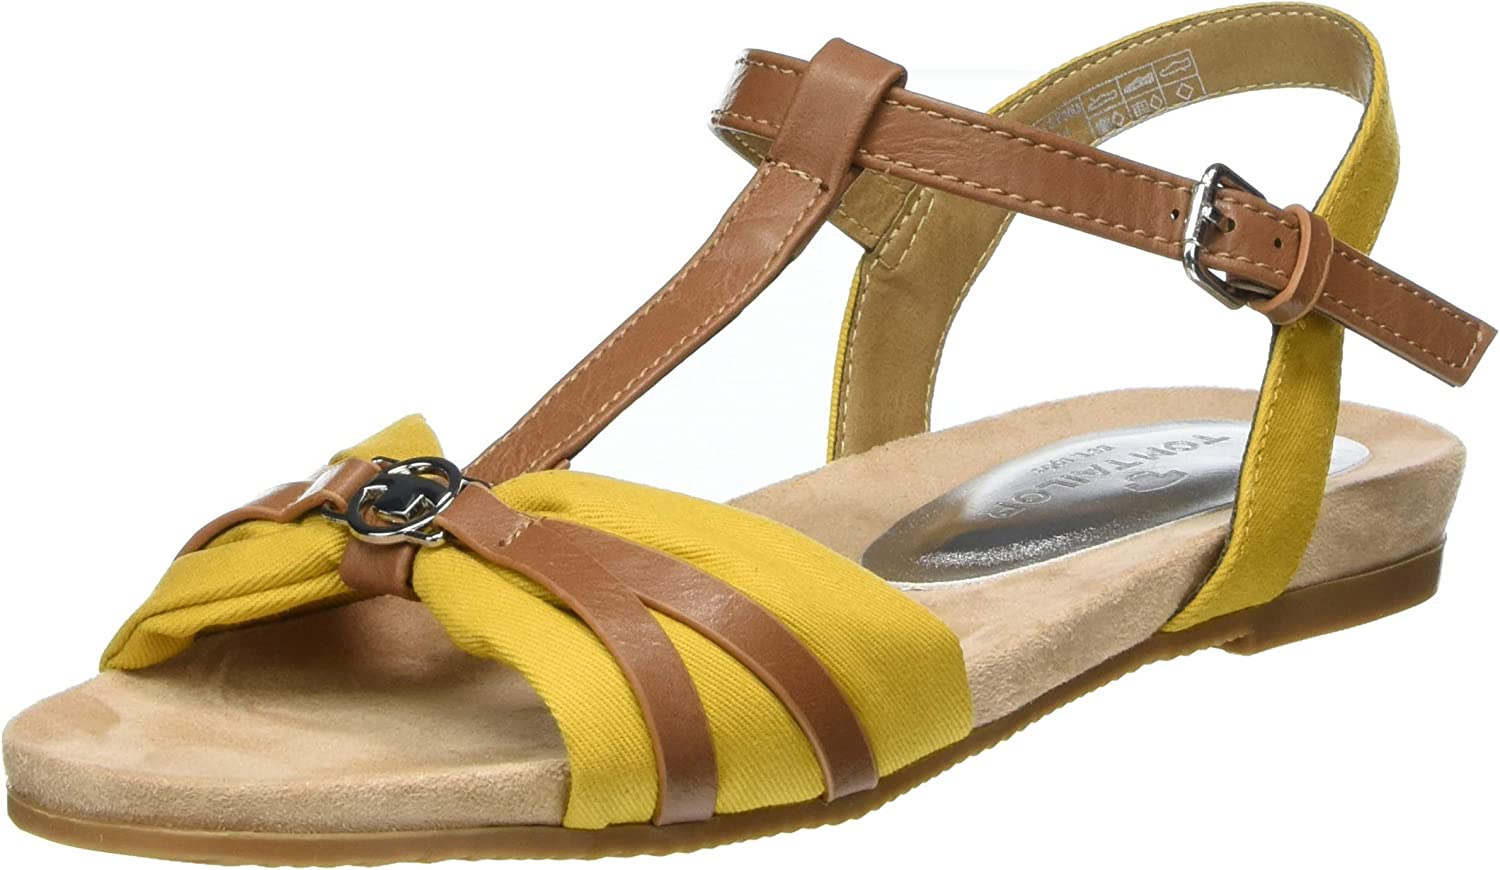 TOM TAILOR Women's Some reservation 8092209 Ankle Sandals Yellow Strap 00 Under blast sales